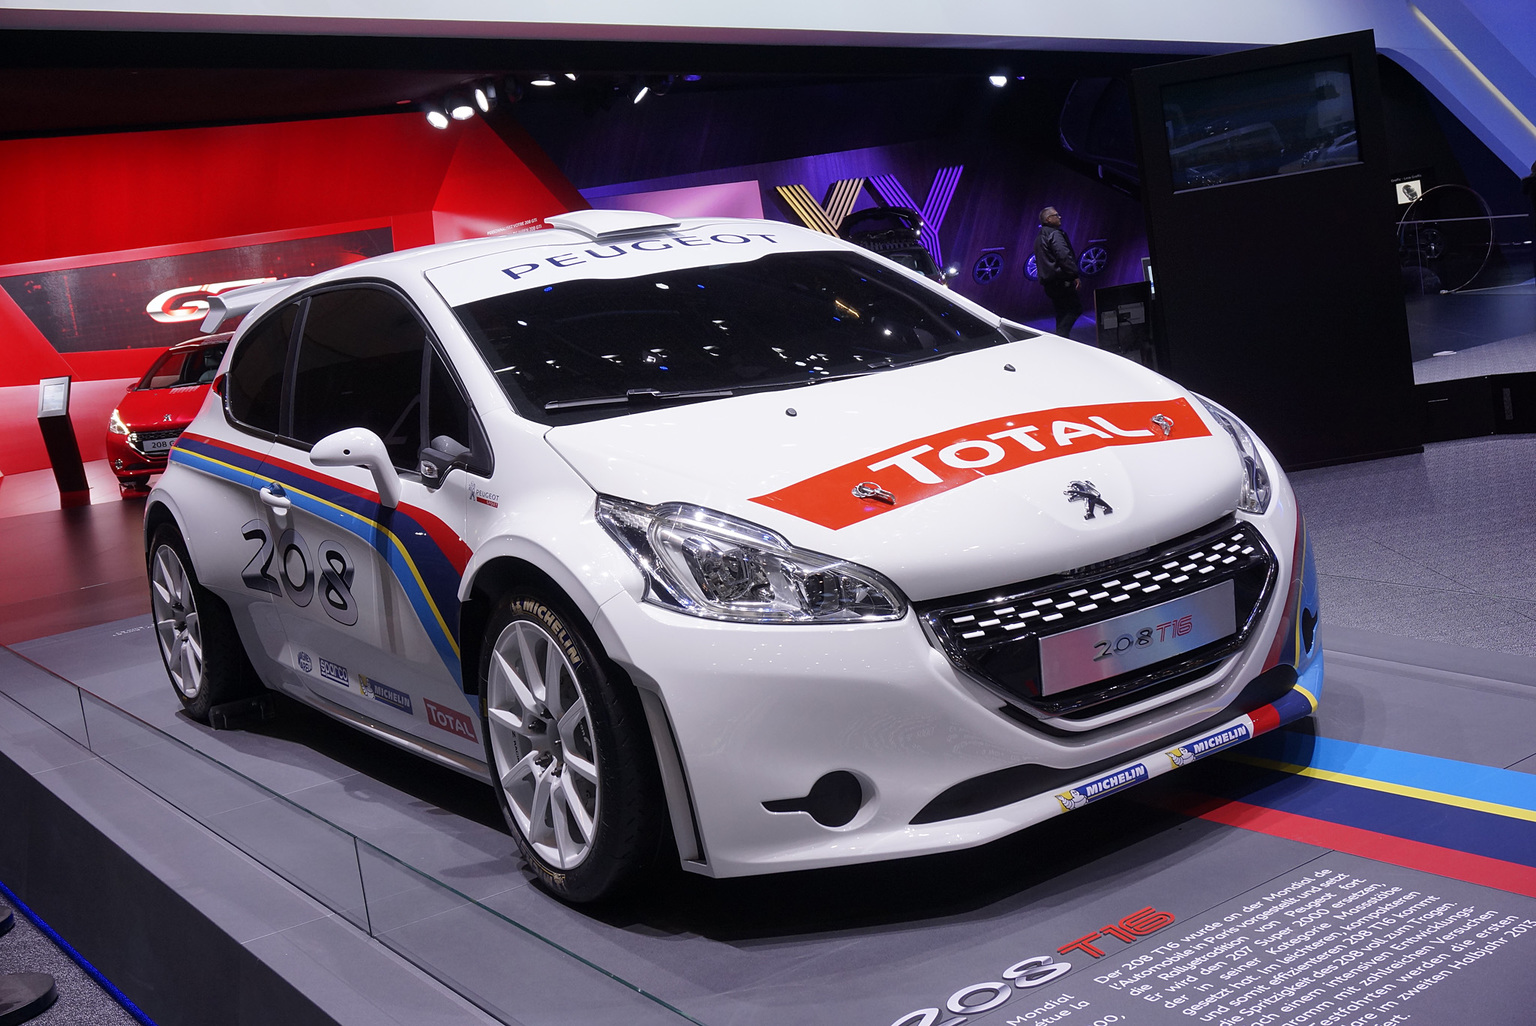 2013 peugeot 208 t16 peugeot. Black Bedroom Furniture Sets. Home Design Ideas